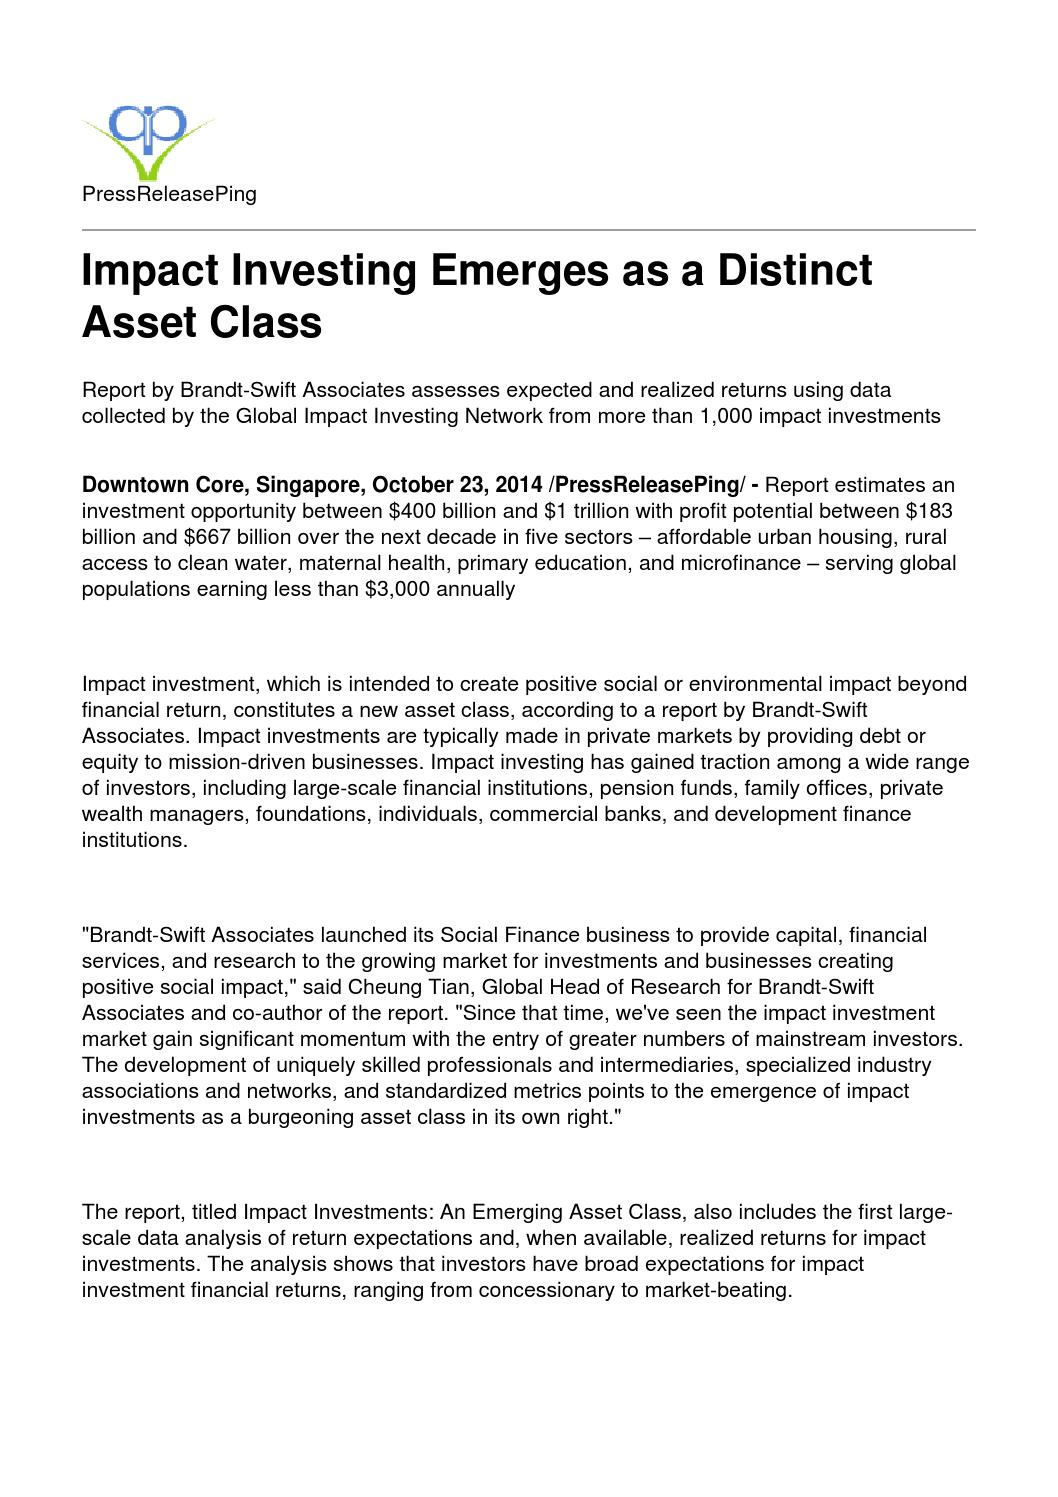 Impact investing emerges as a distinct asset class by PRPING